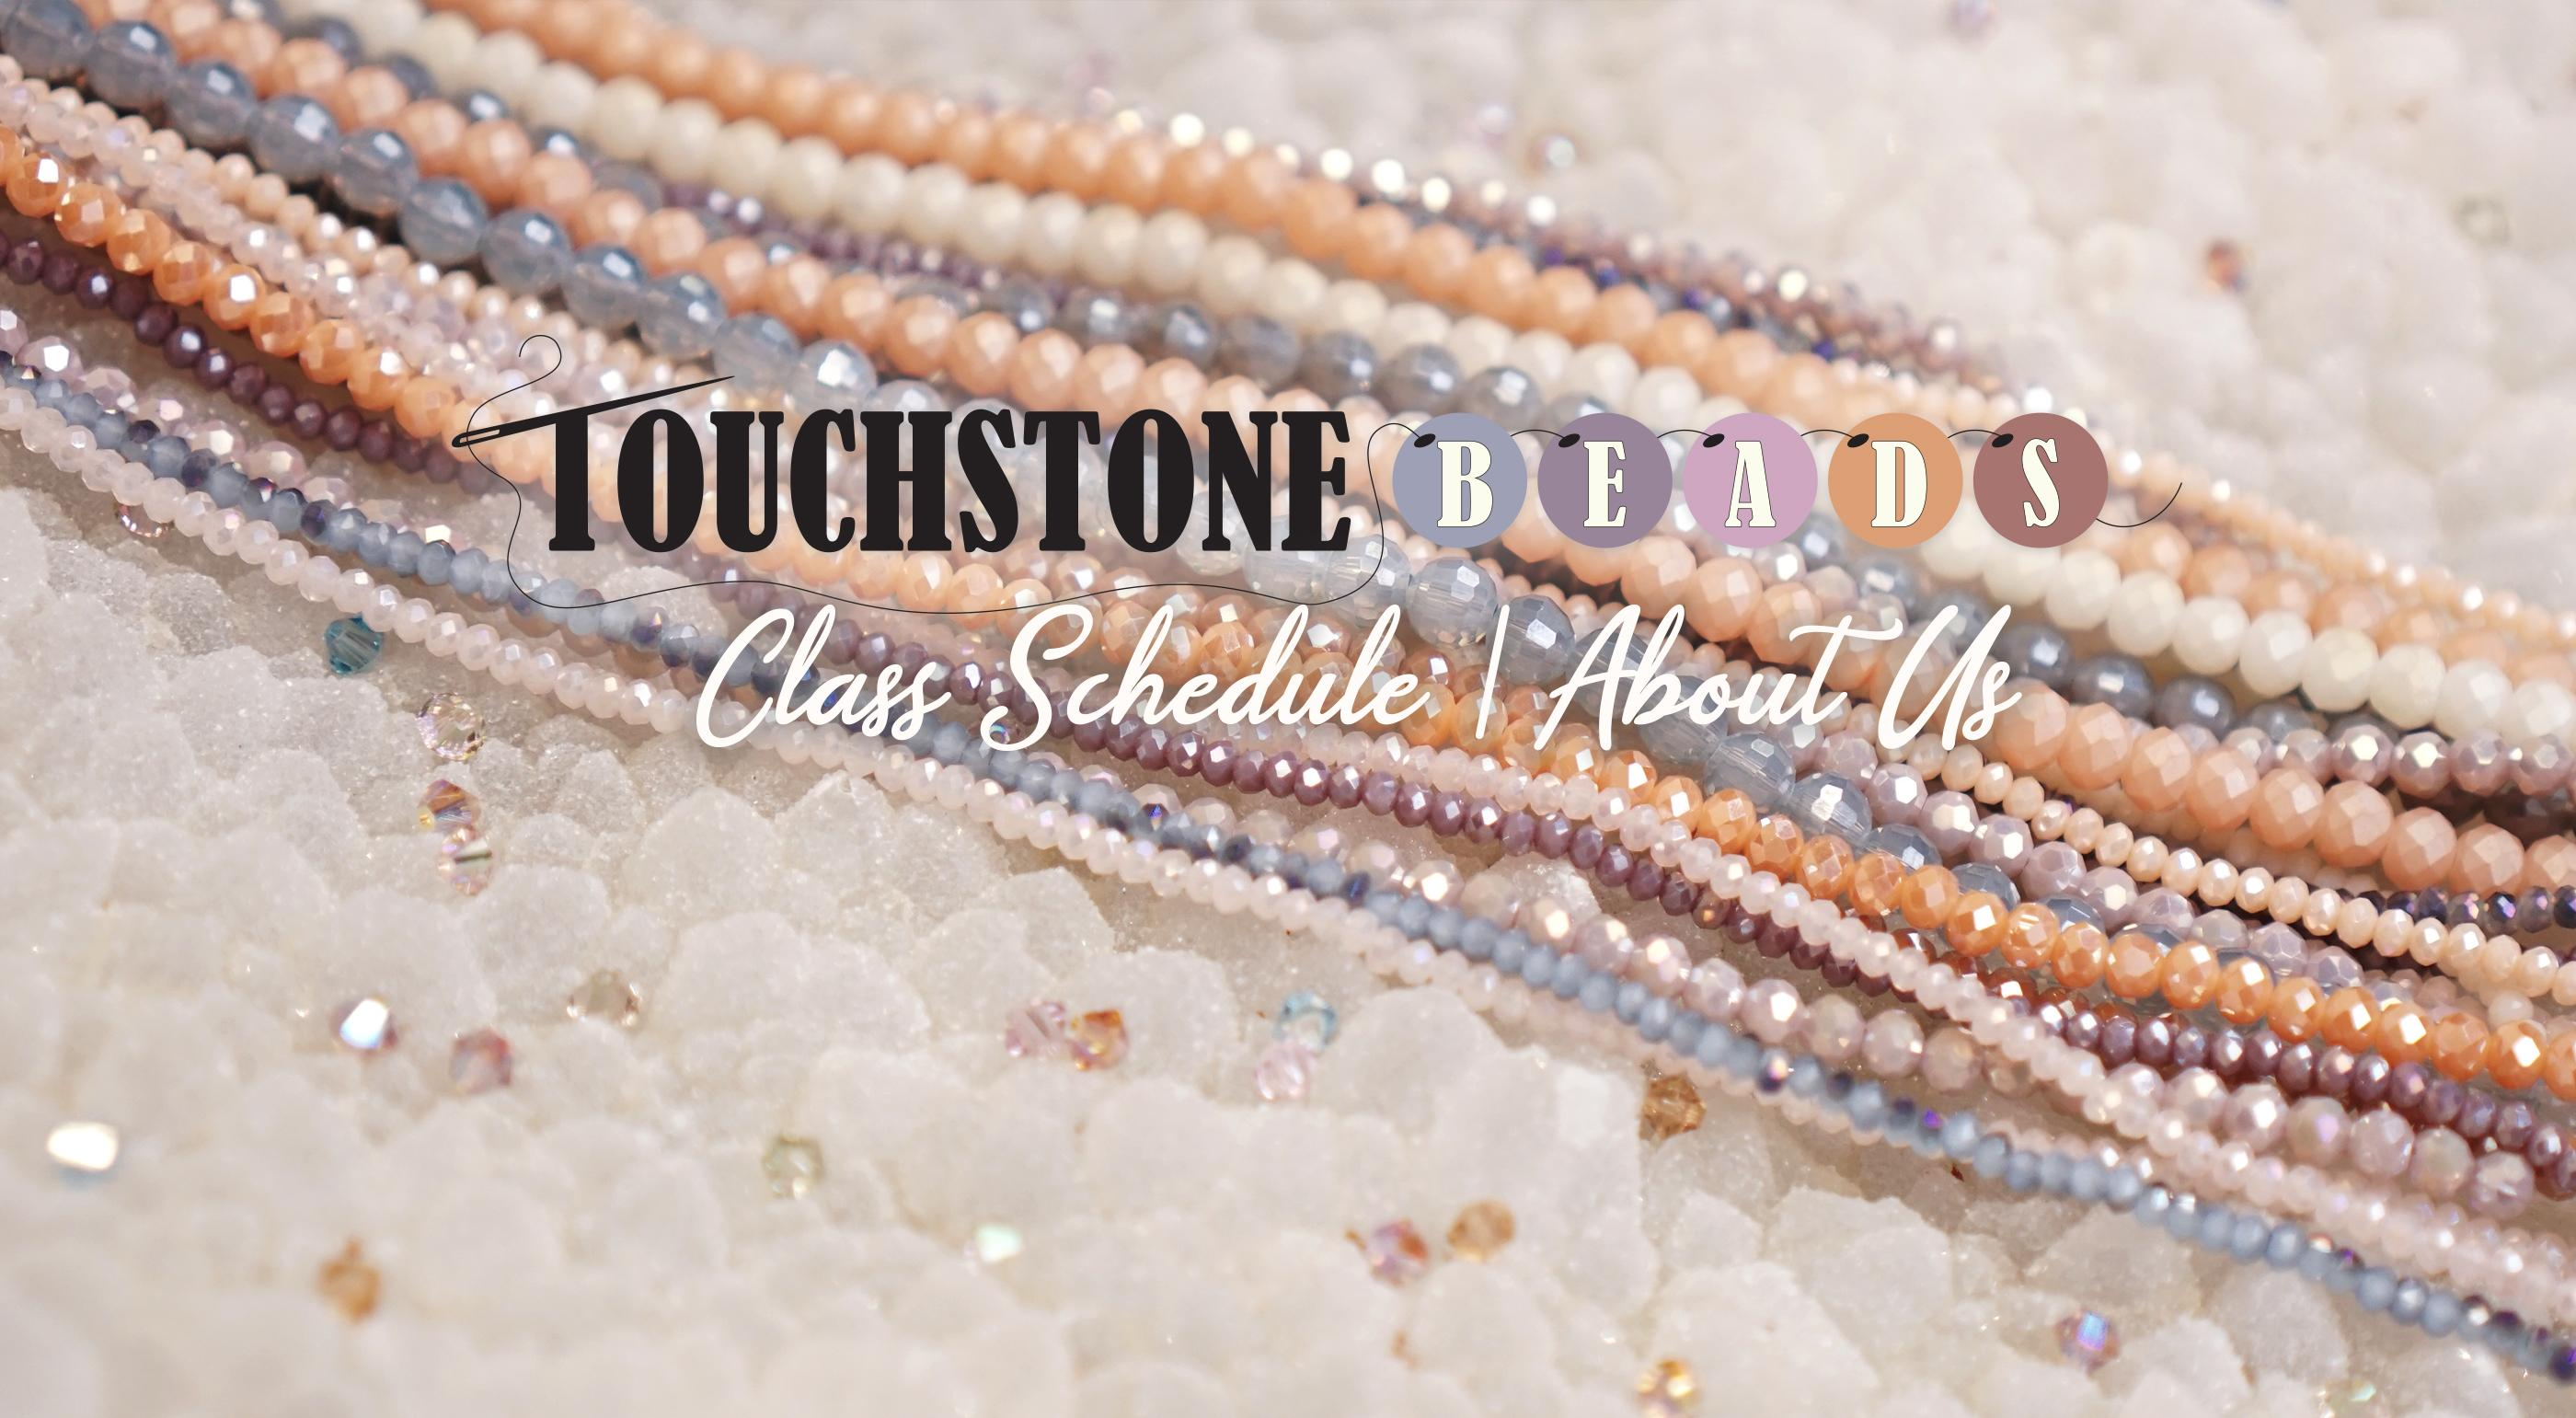 Touchstone Beads Homepage